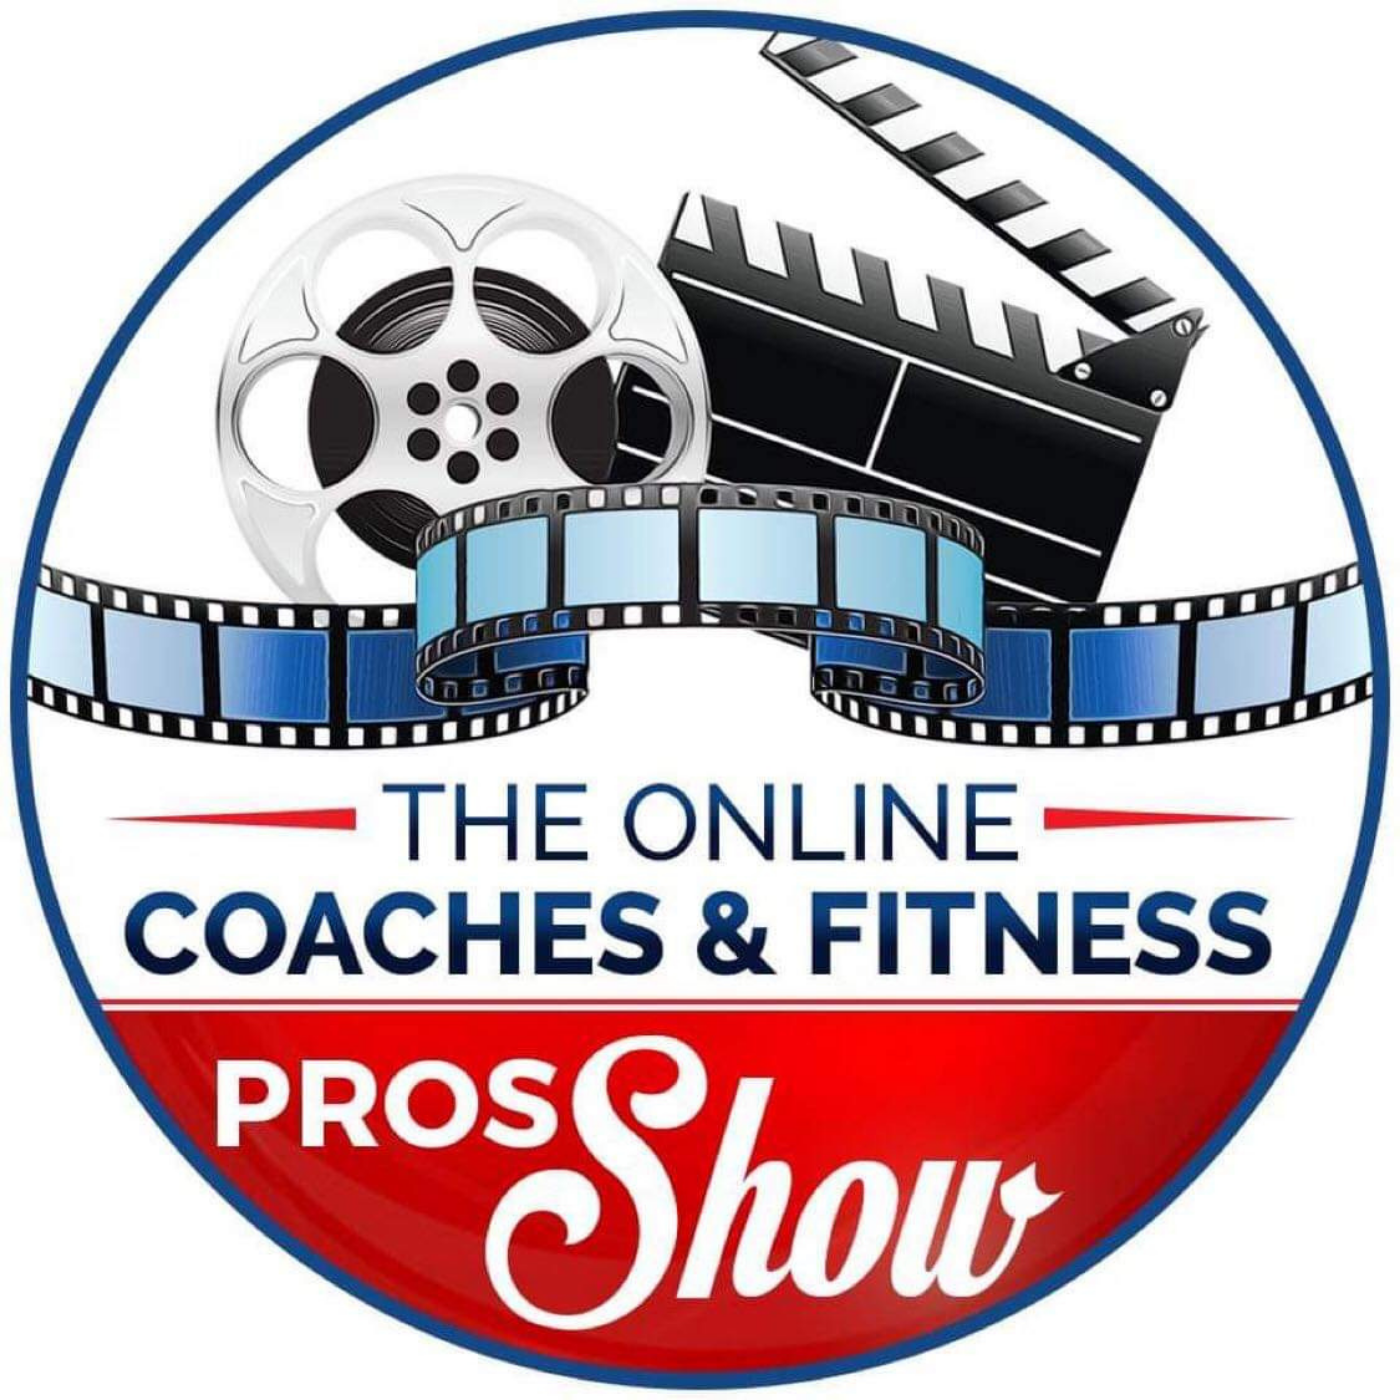 The Online Coaches & Fitness Pros Show